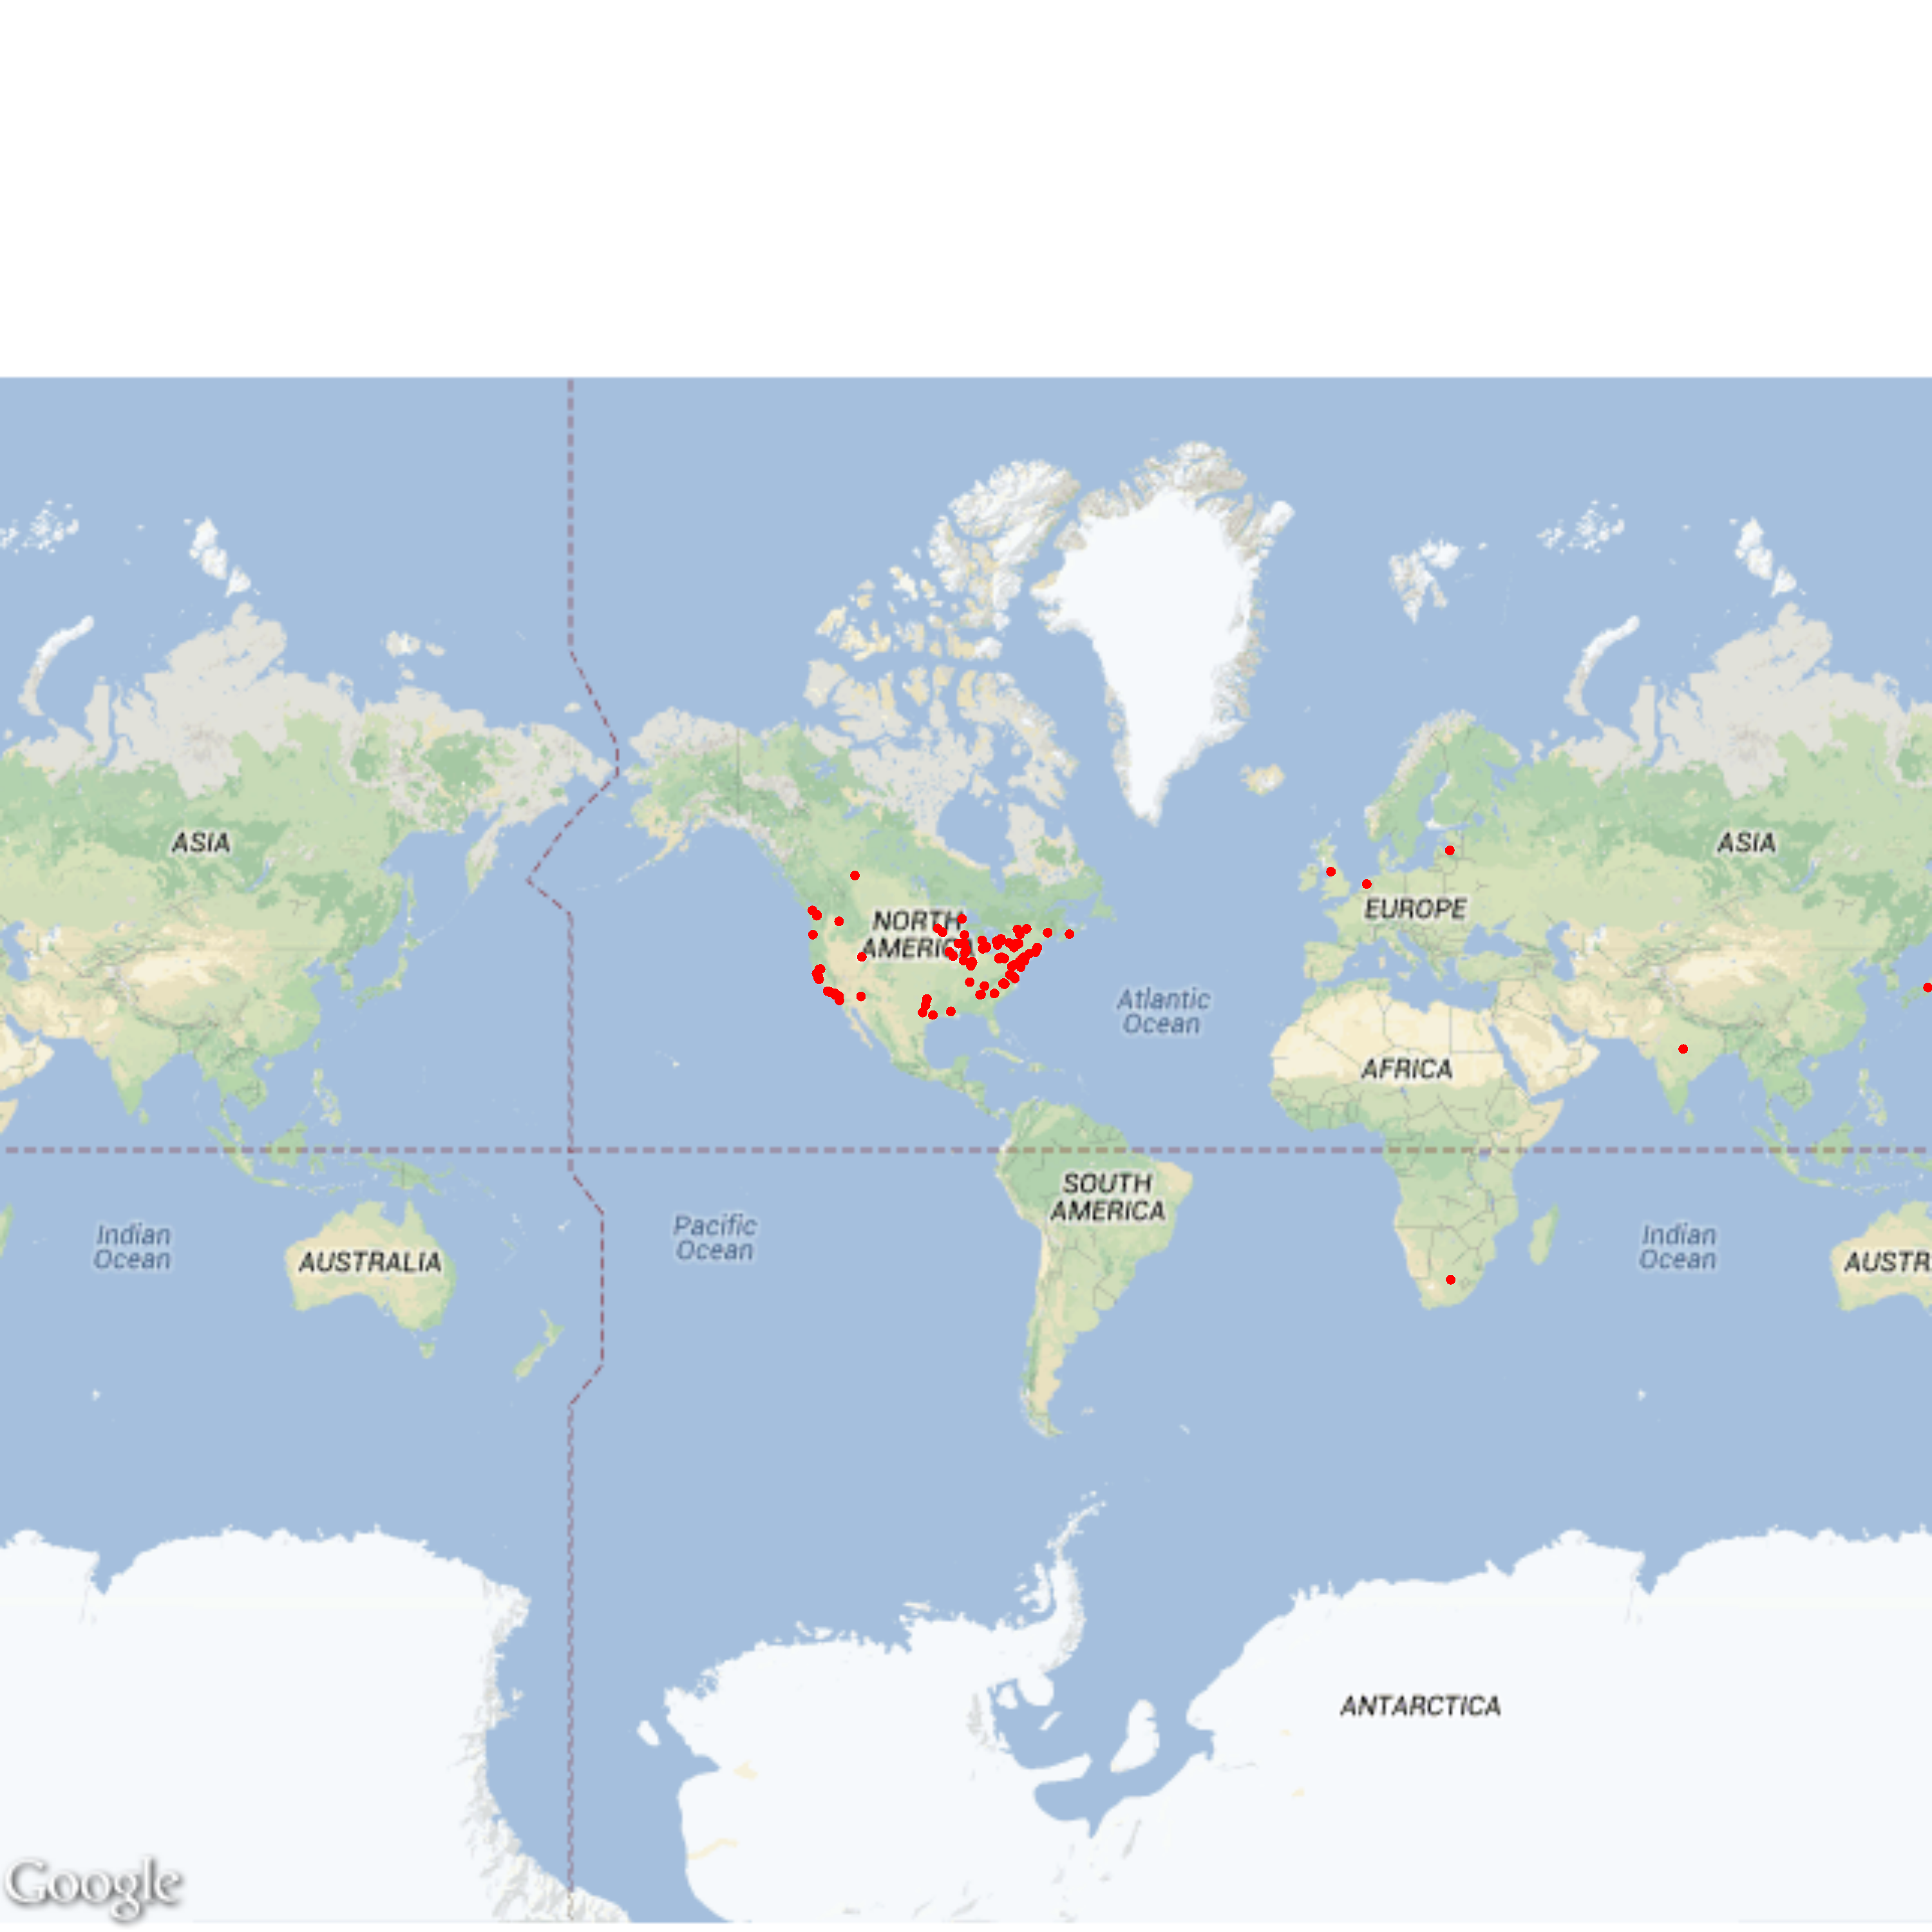 HASTAC Scholars And The Geography Of Topics HASTAC - Google map america east coast